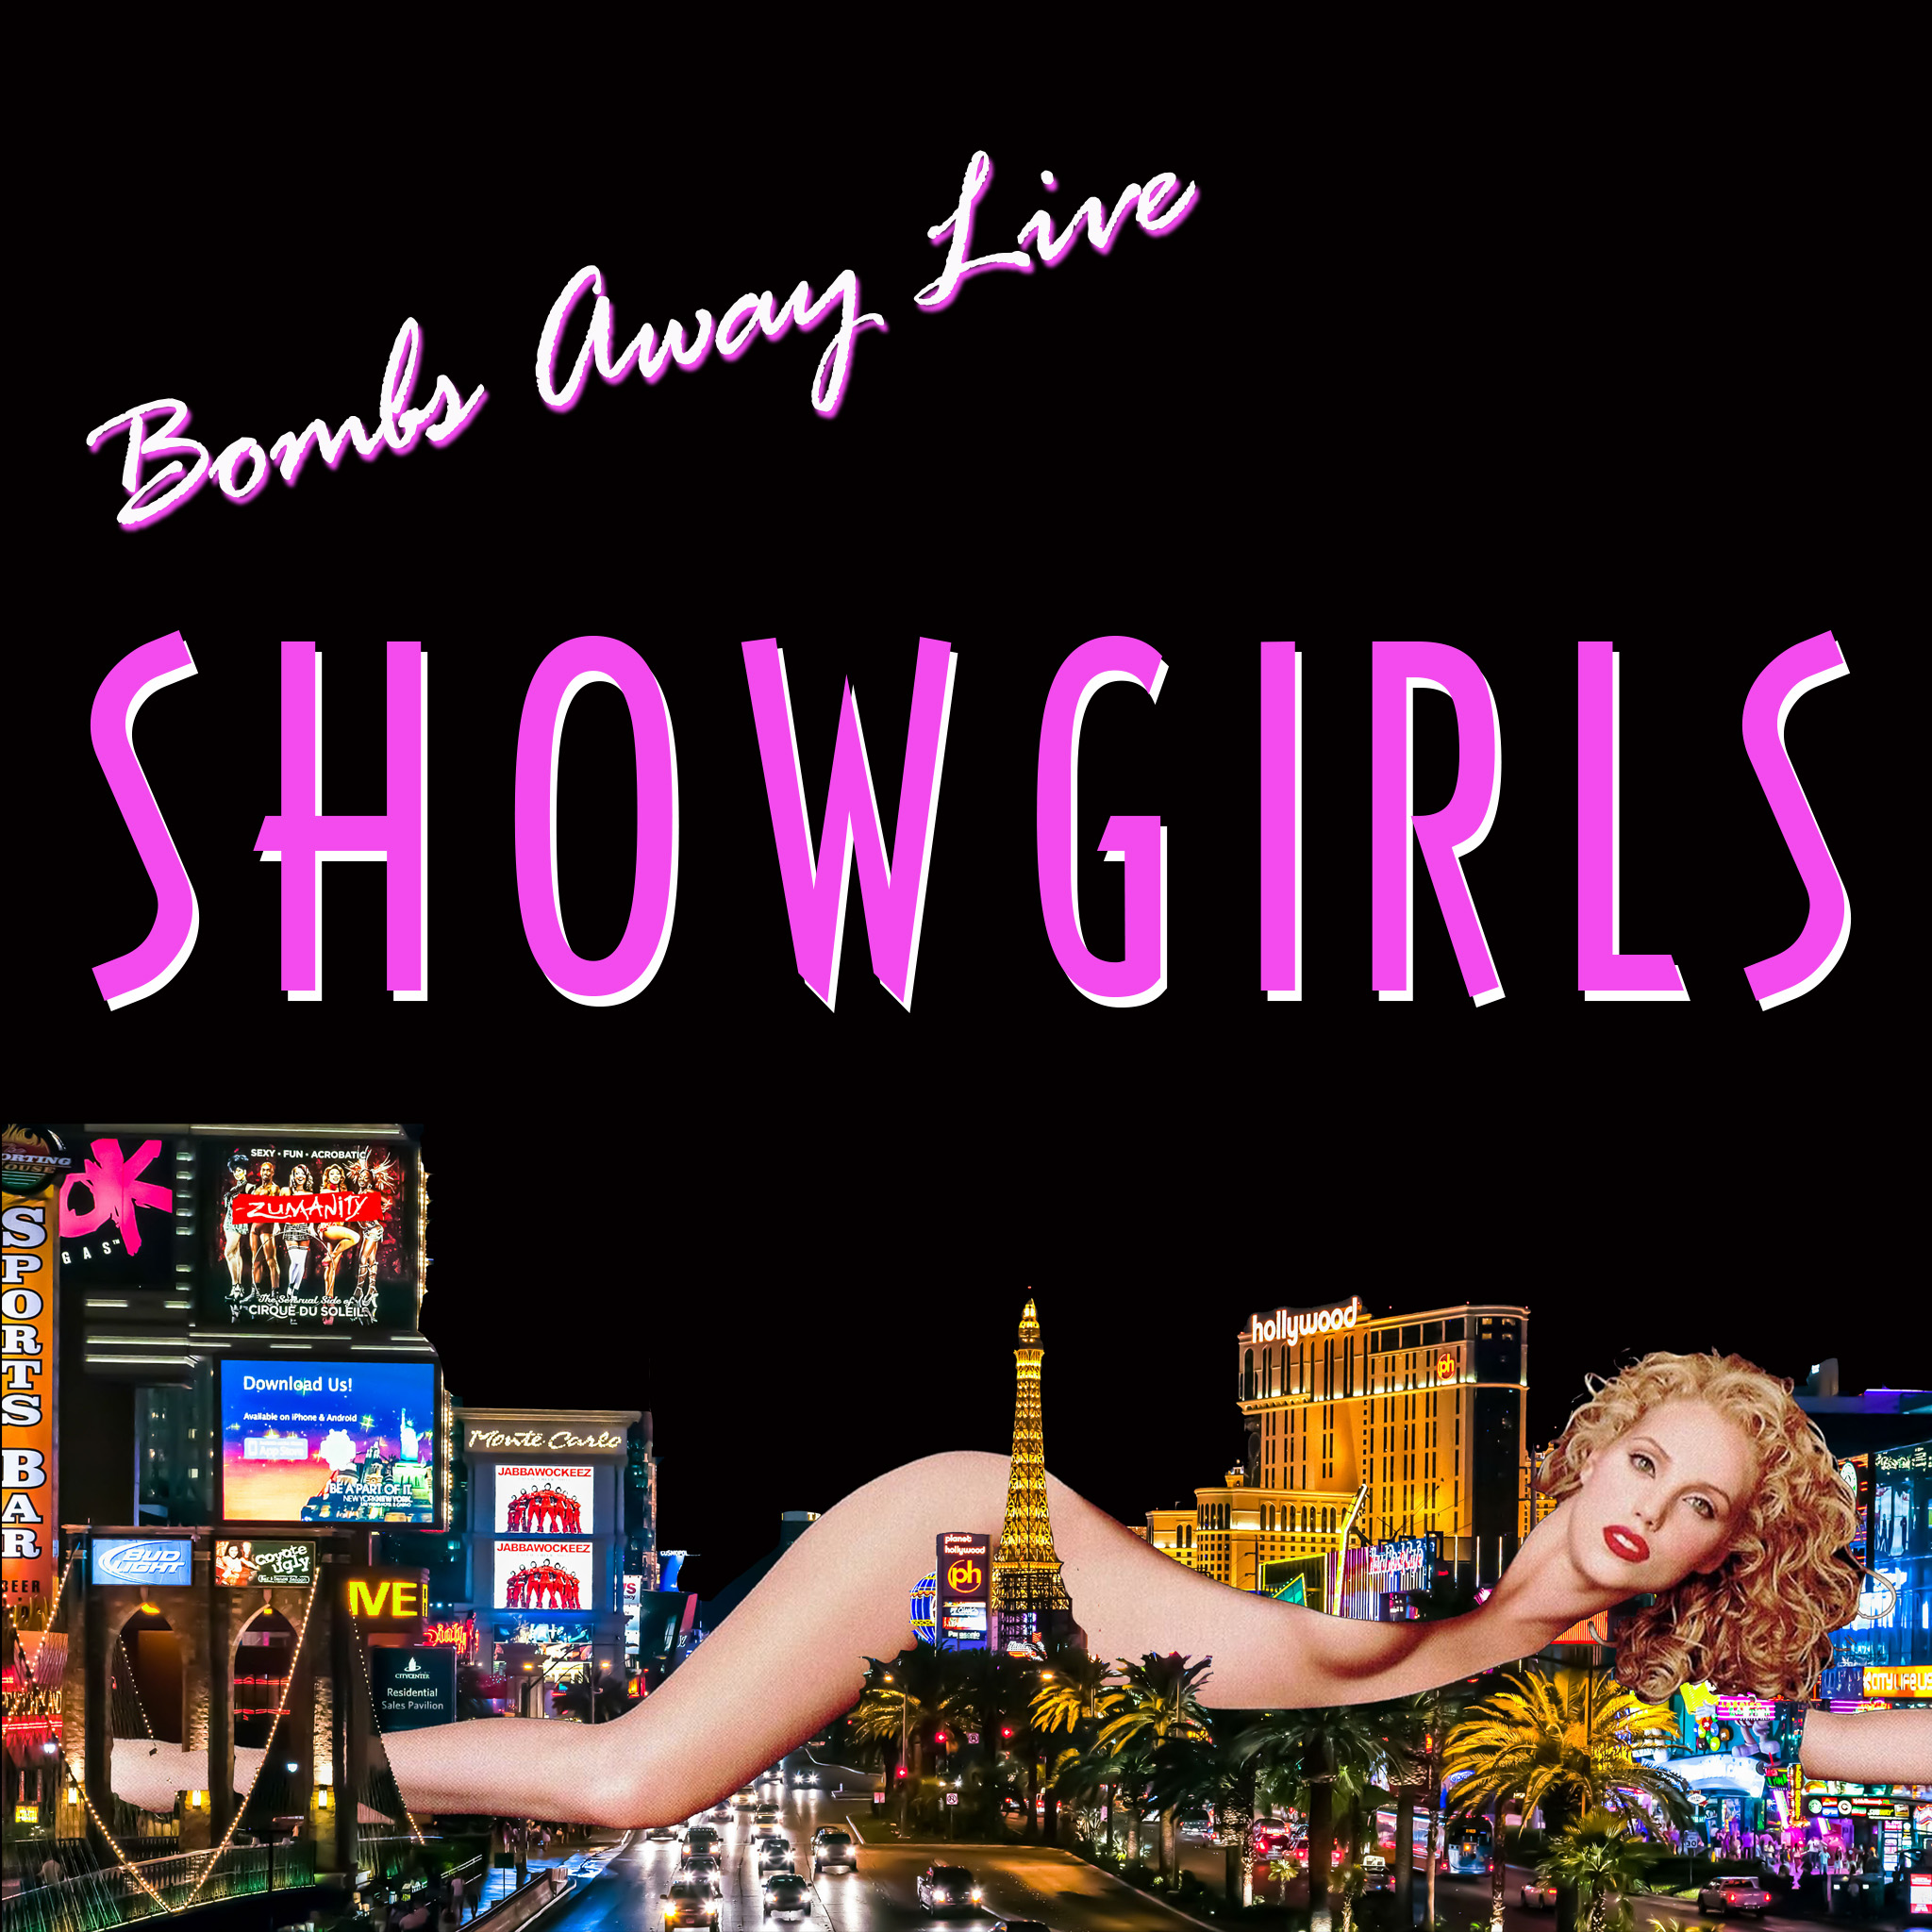 Episode 97 - Showgirls (1995) LIVE [w/ Rena Riffel and Logan Crow]